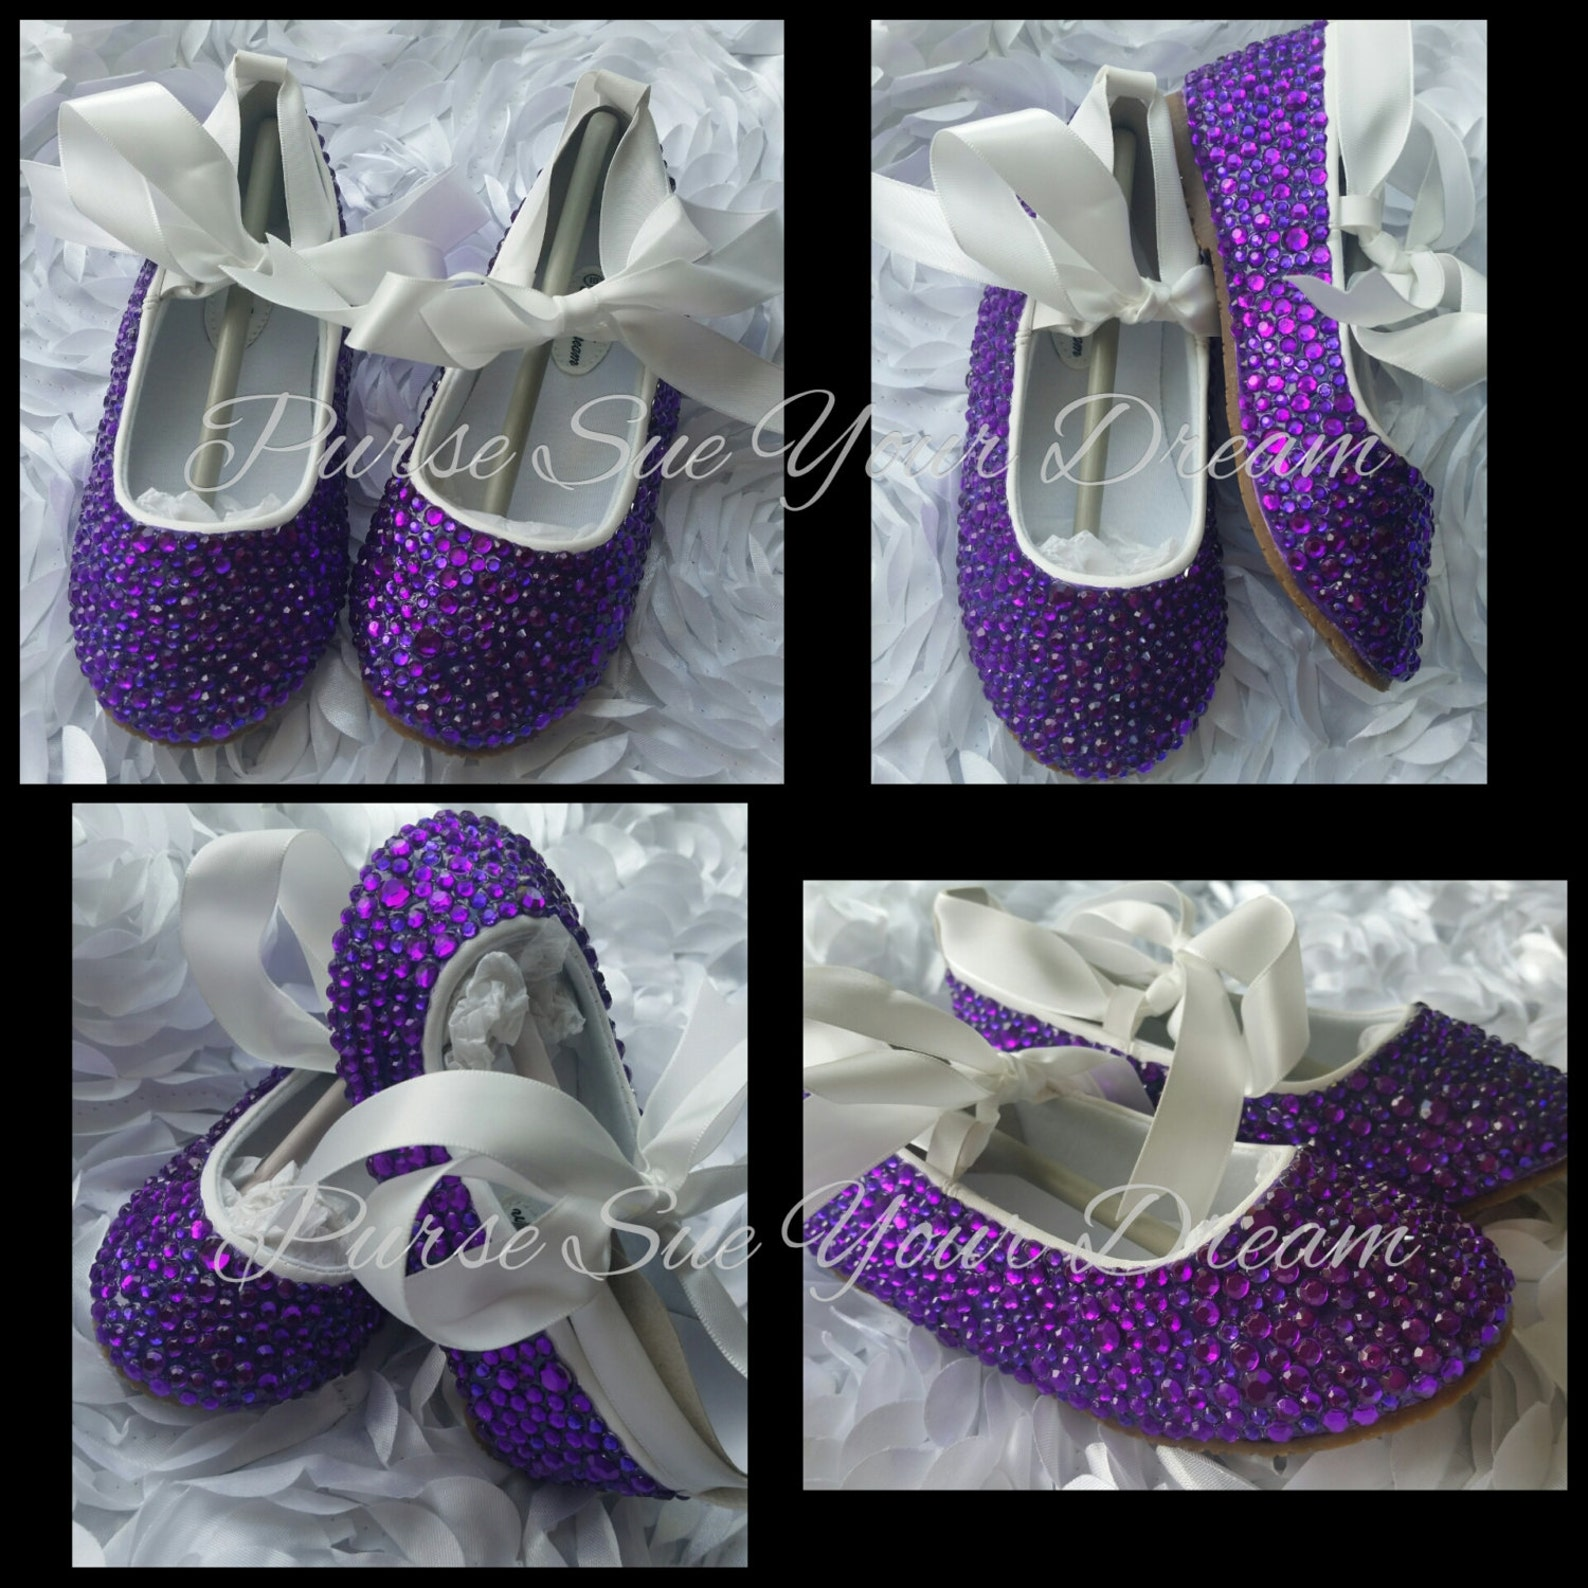 custom amethyst purple swarovski crystal rhinestone ballet flat shoes - wedding shoes - wedding flats - wedding party shoes